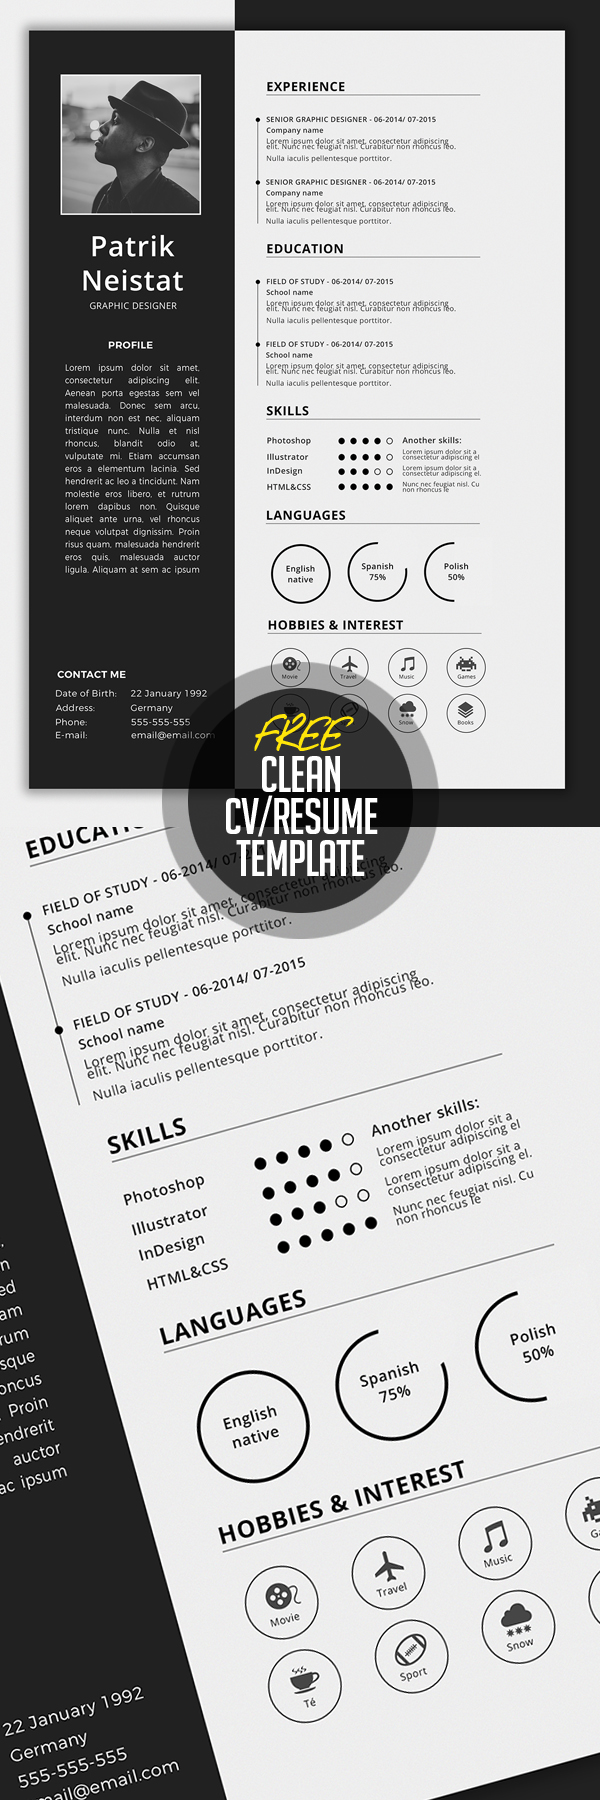 simple cvresume template free download - Free Resu